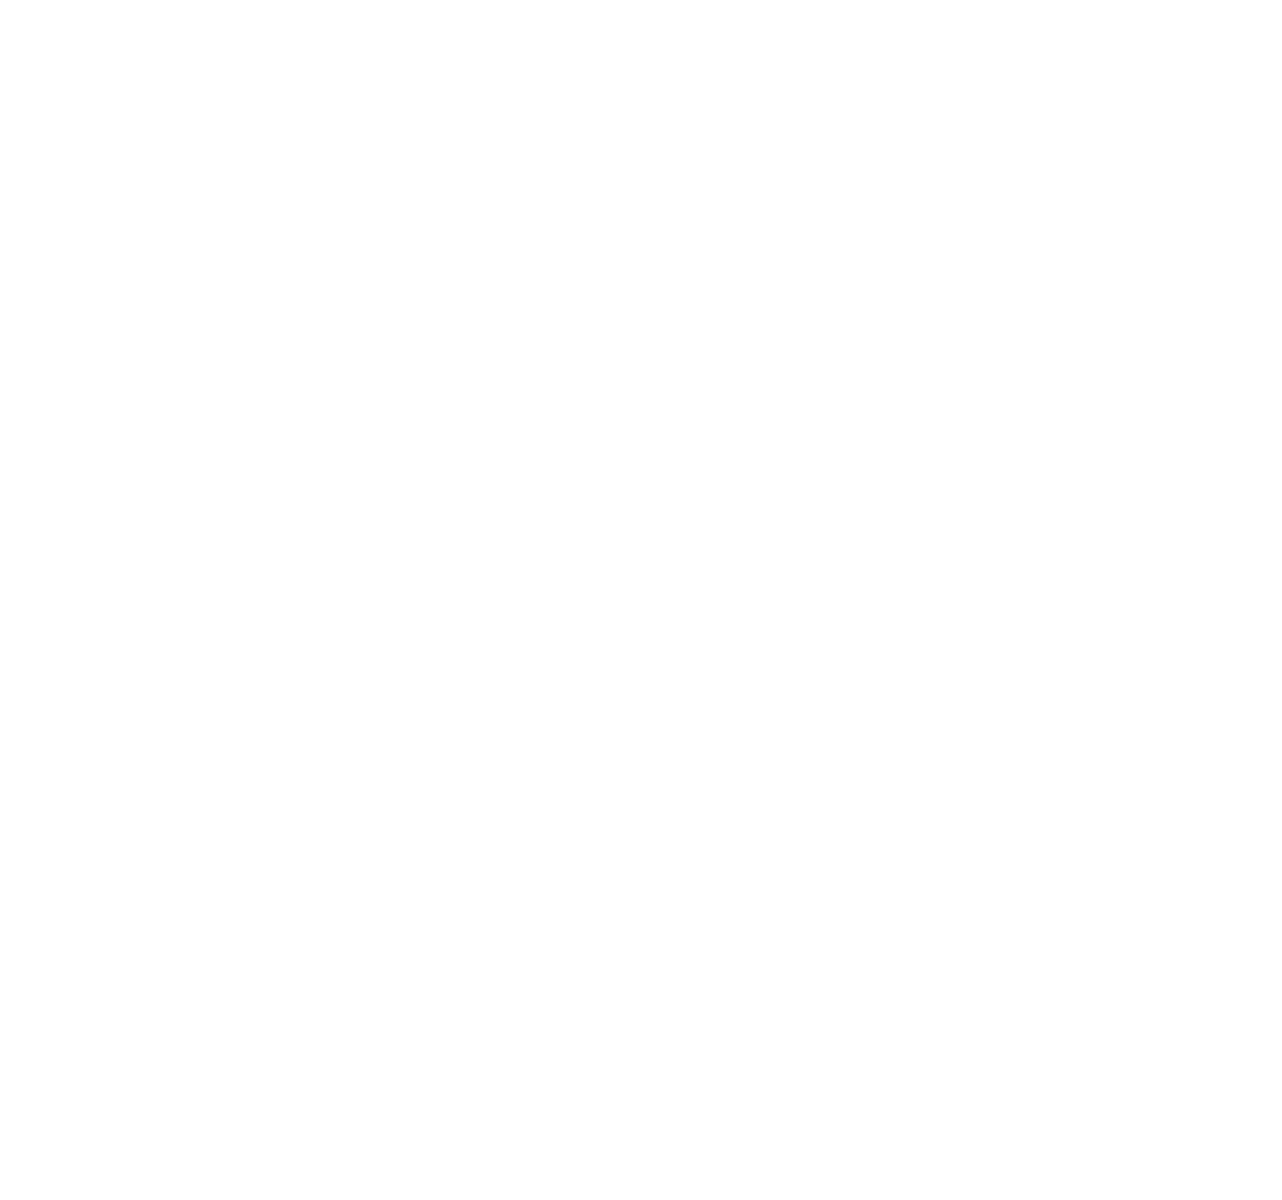 MEDIAKIA | Servicios de Marketing digital, Diseño Web y Branding